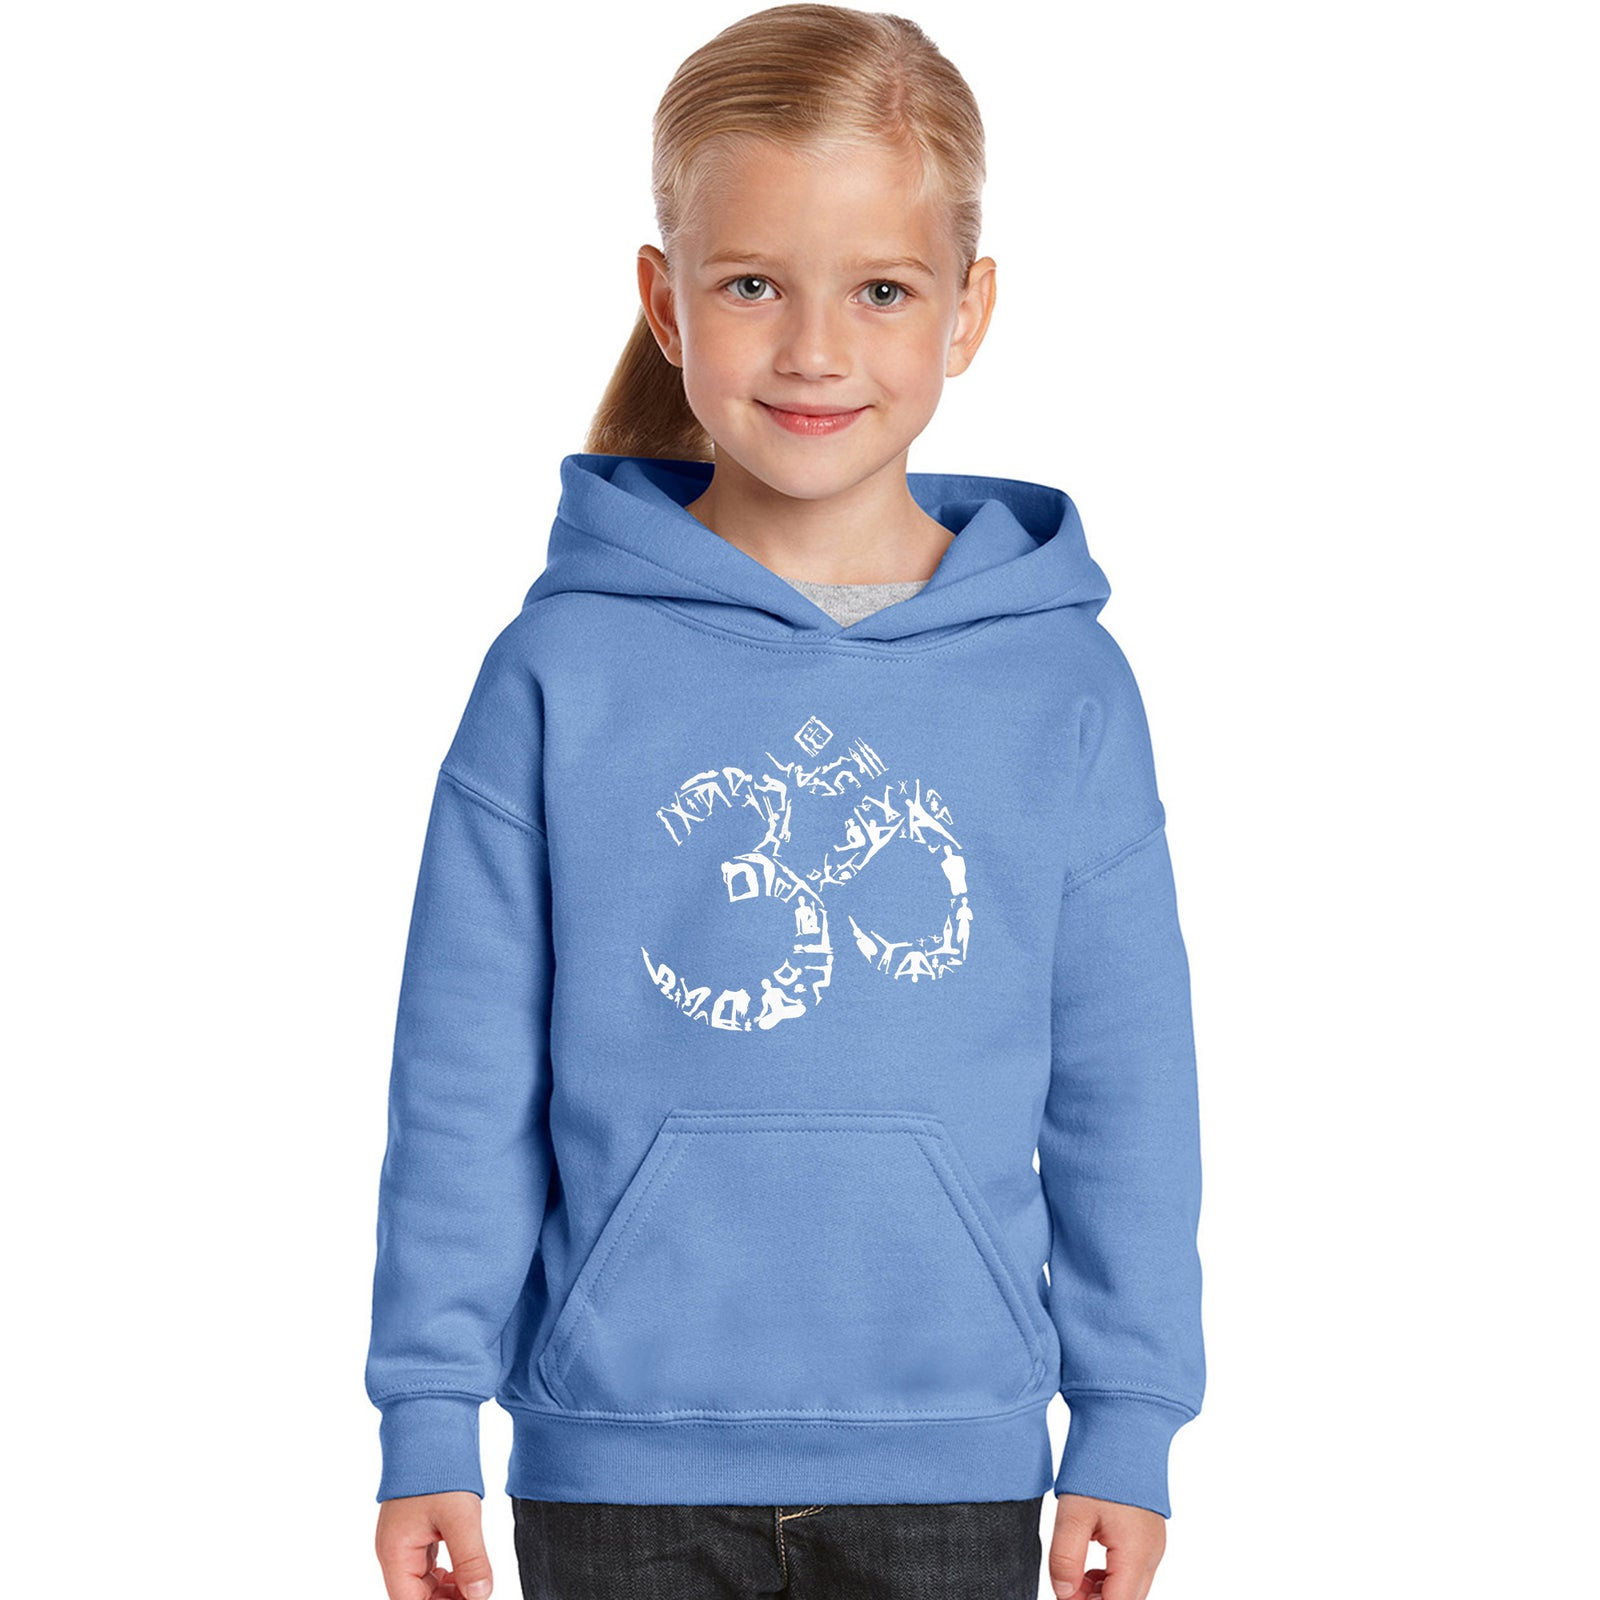 Girl's Hooded Sweatshirt - THE OM SYMBOL OUT OF YOGA POSES